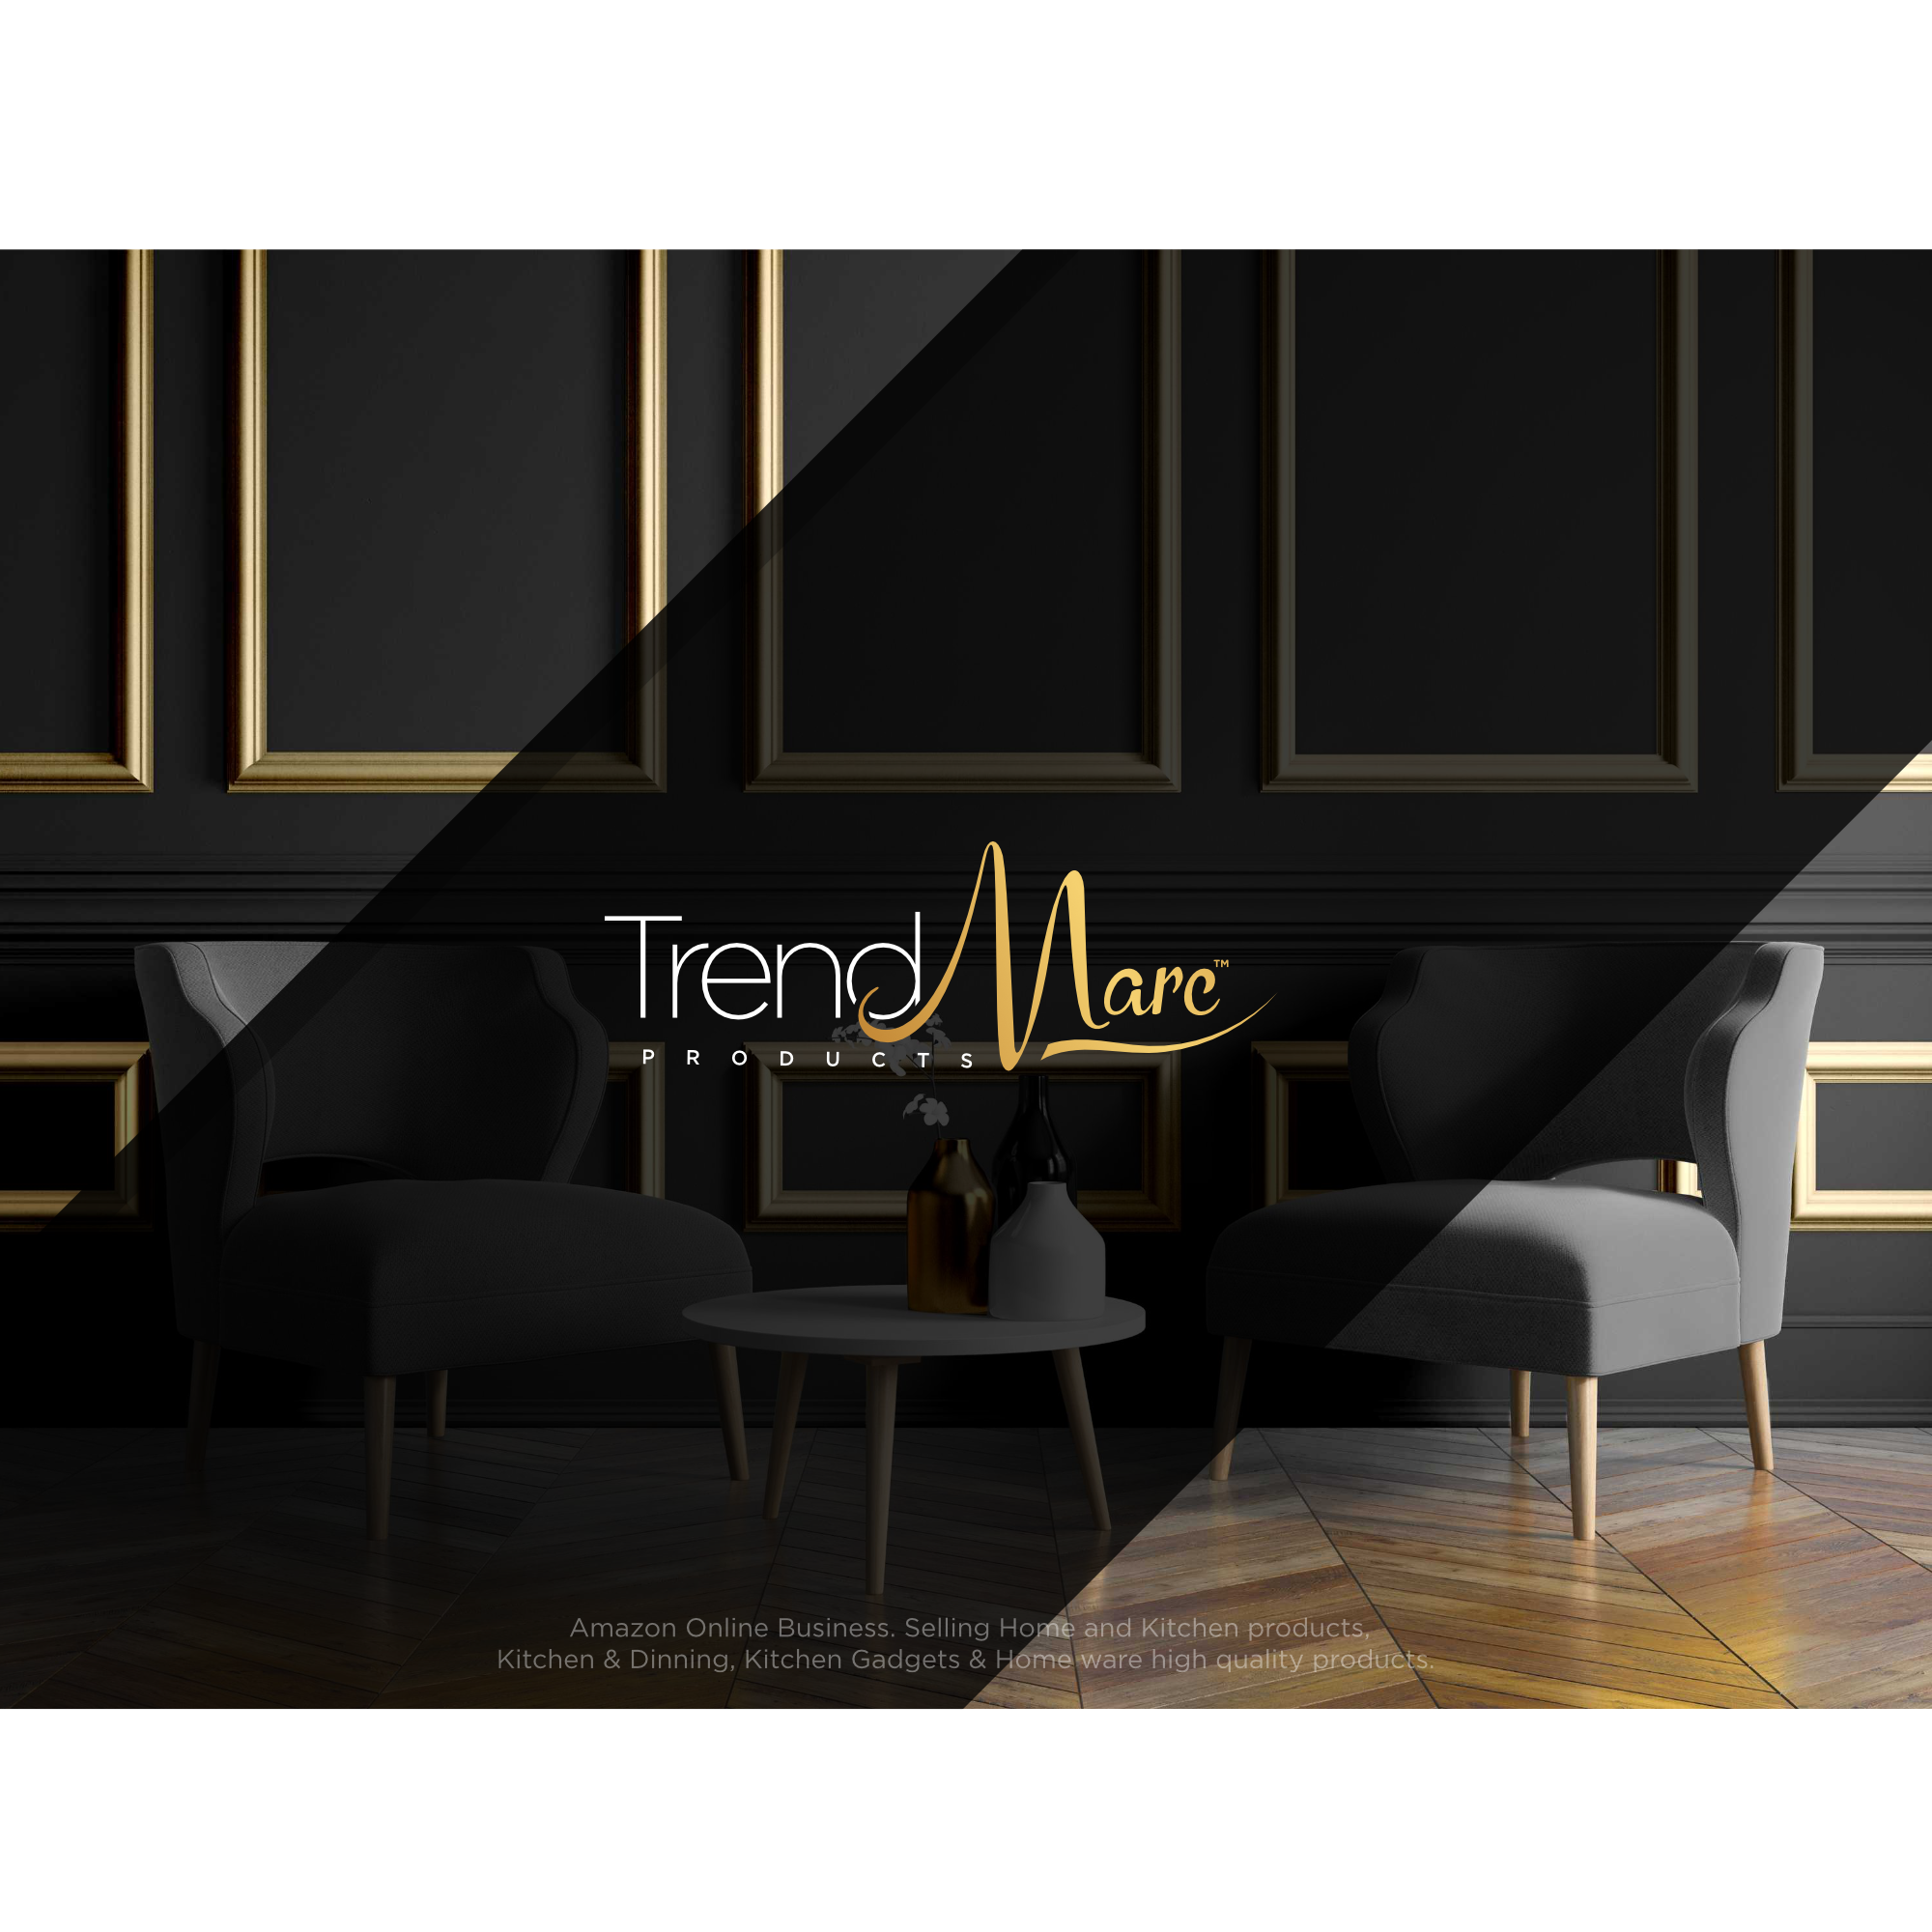 I want a trendy logo and Website for my new online Amazon business brand